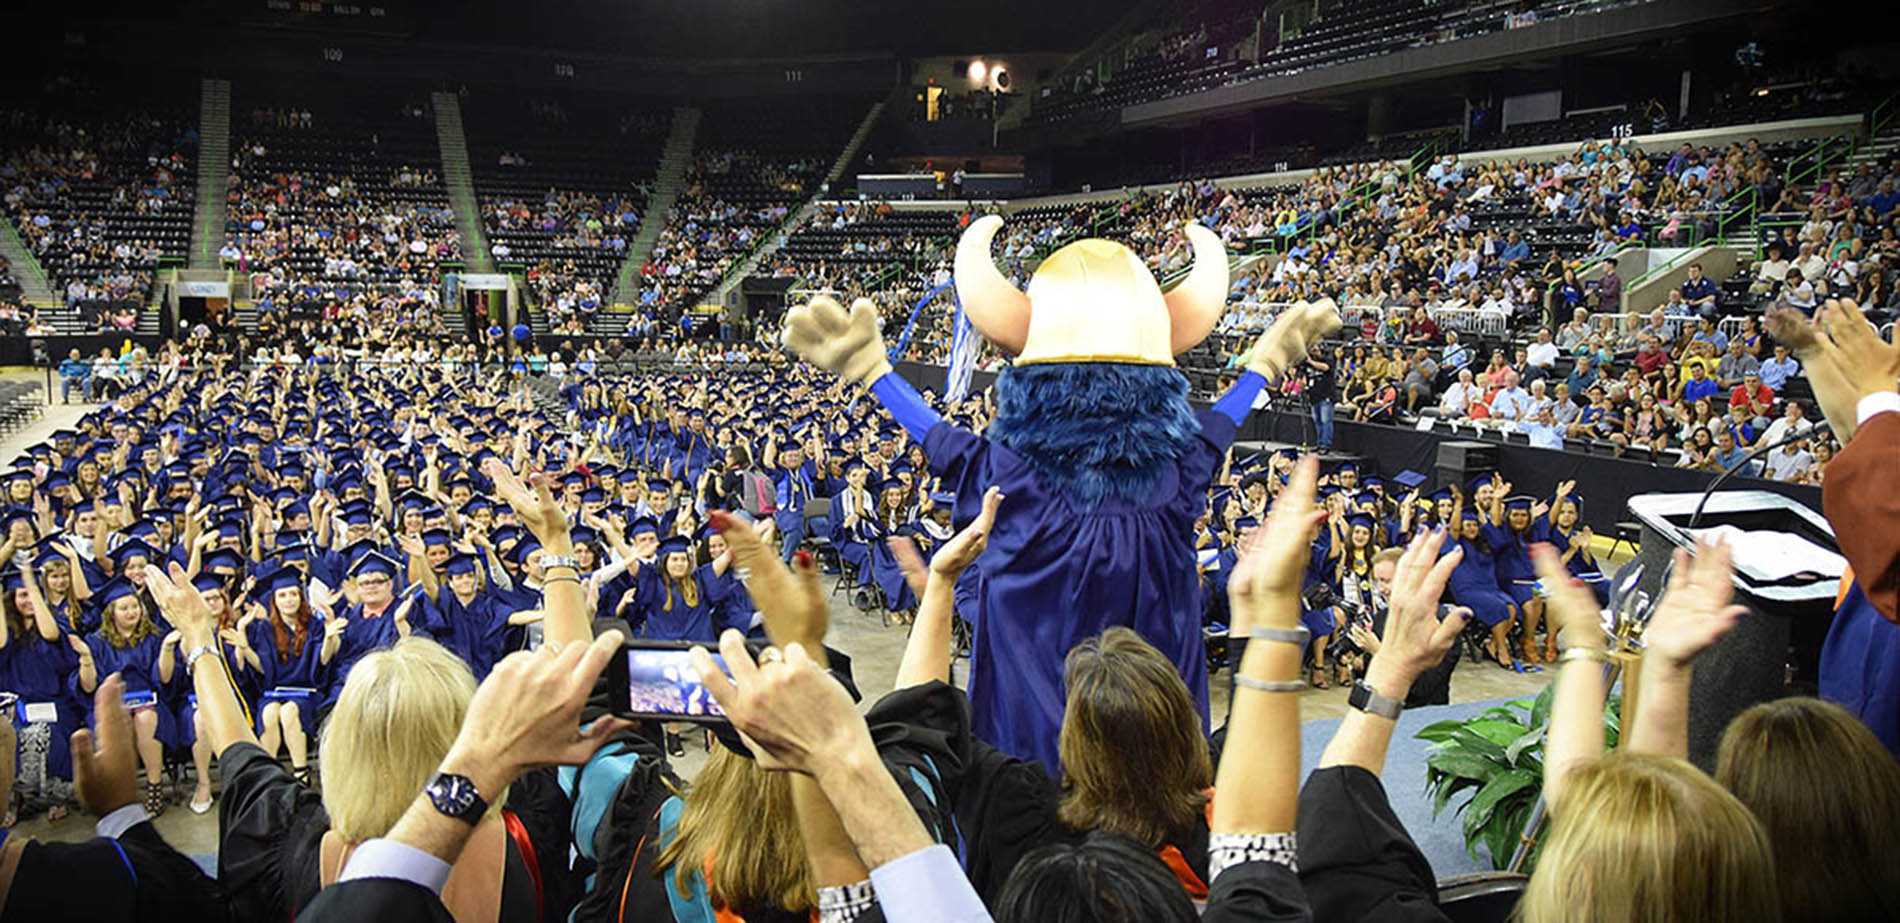 Valdar the Viking leading the Viking Clap at graduation